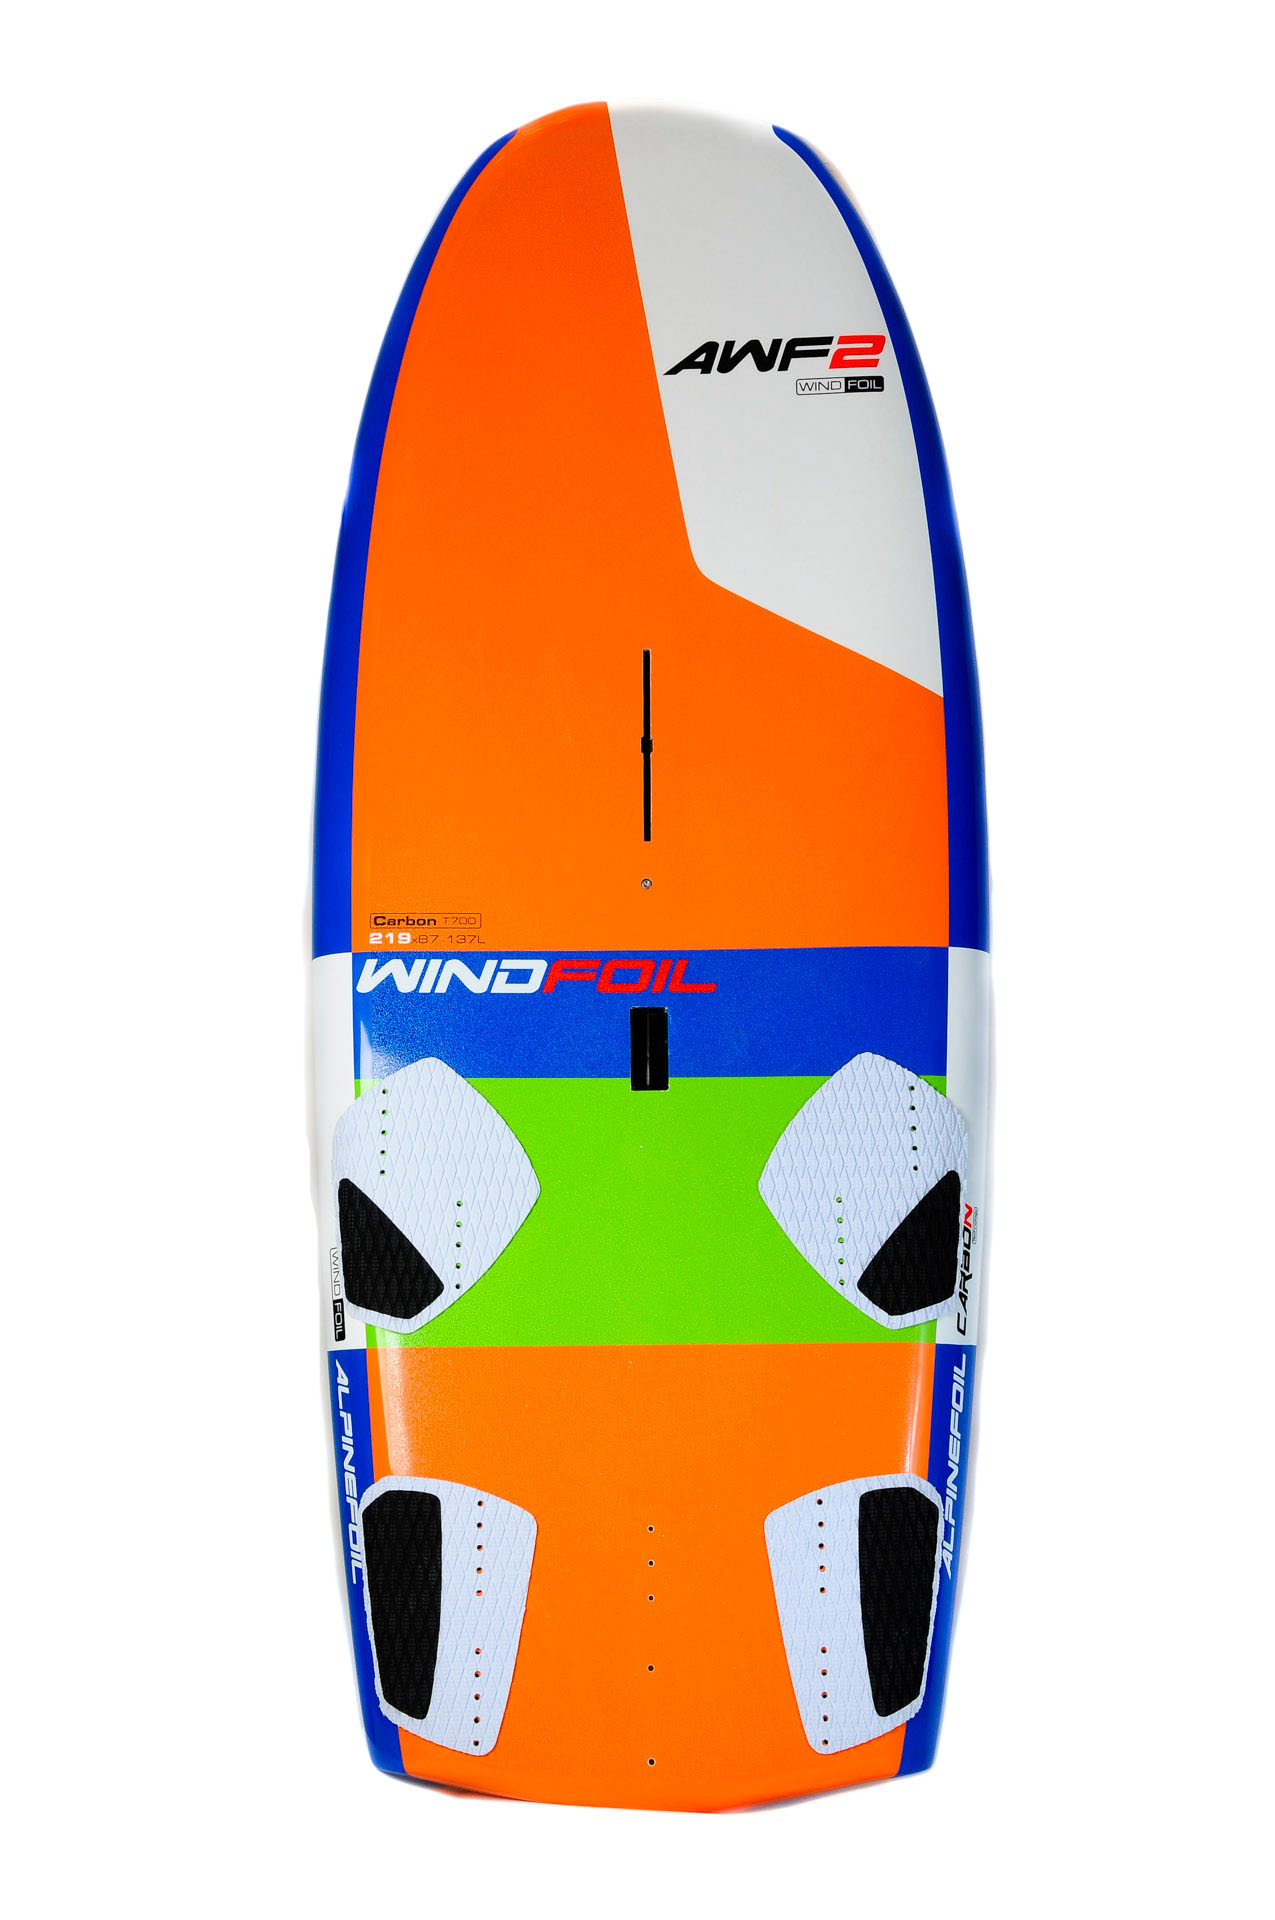 Windfoil alpinefoil carbon a1 9274 copie